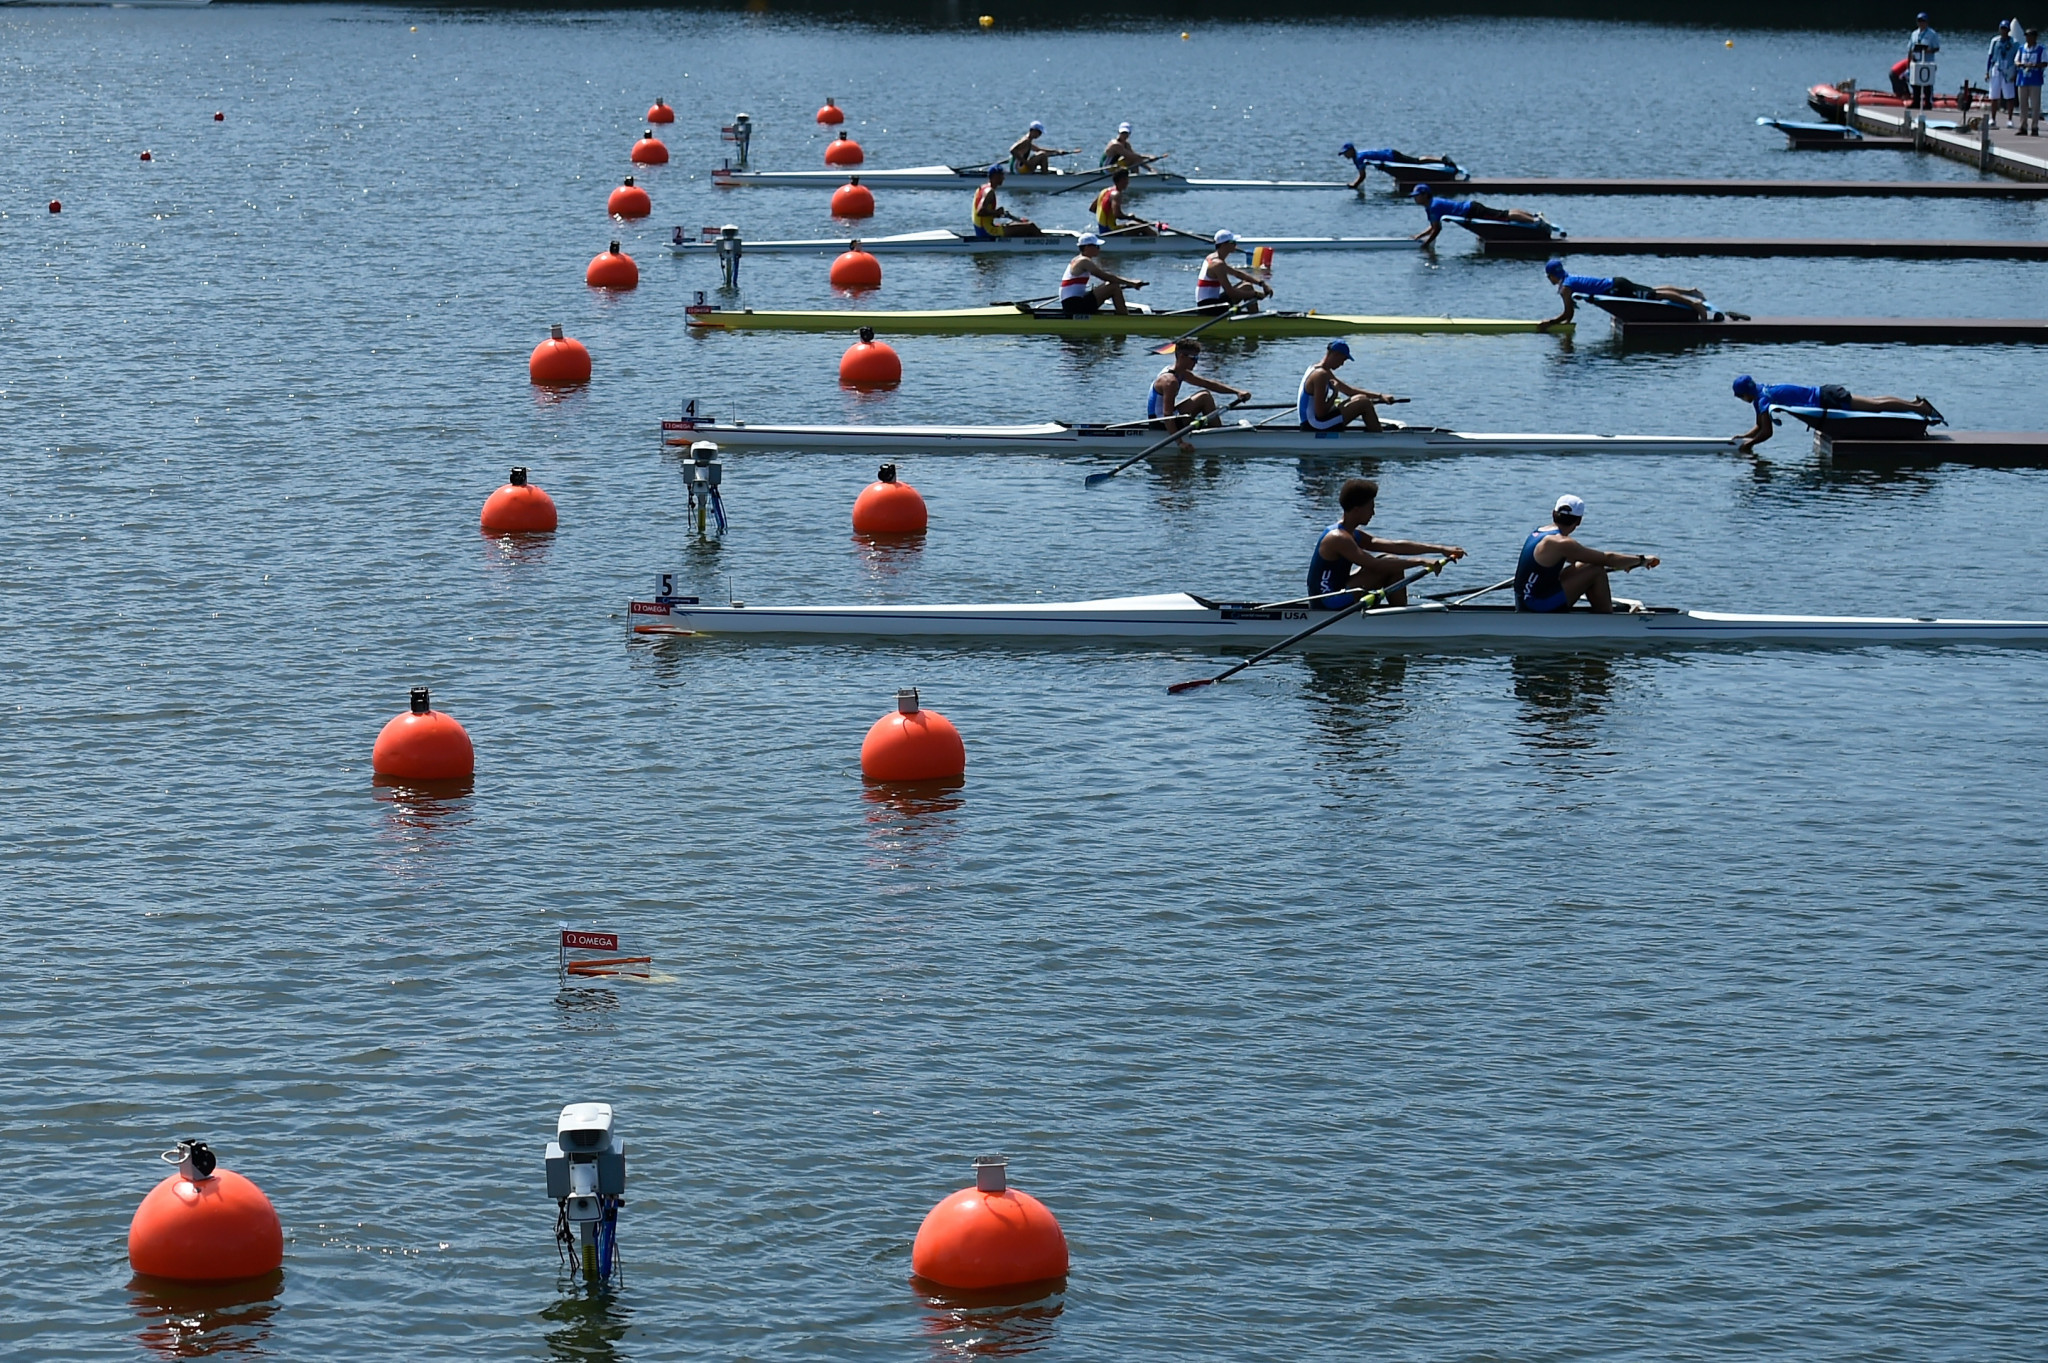 Tokyo 2020 rowing course opens for Asia-Oceania Olympic qualification regatta